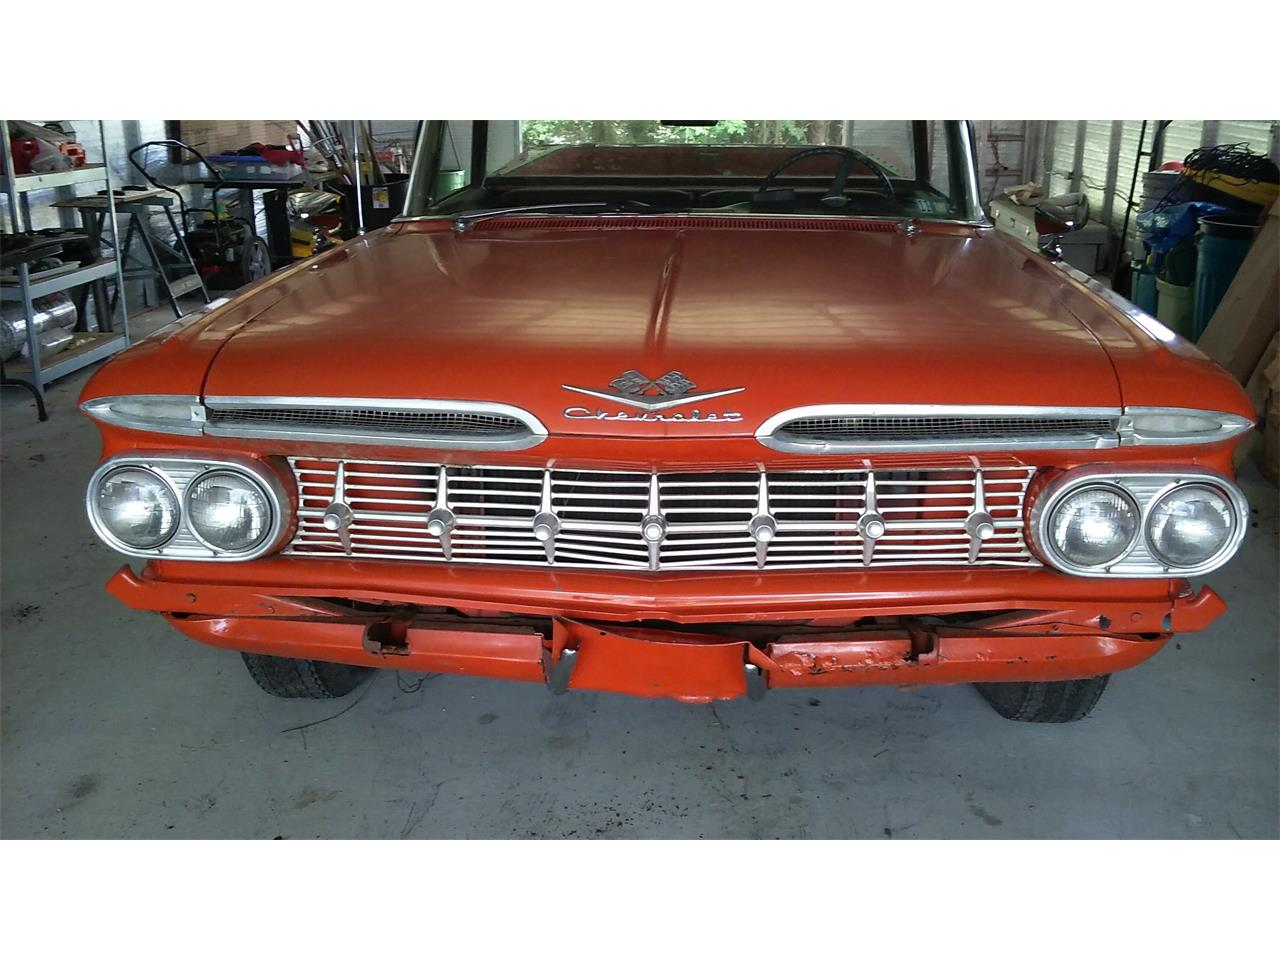 Large Picture of '59 El Camino - $9,500.00 - IWY1